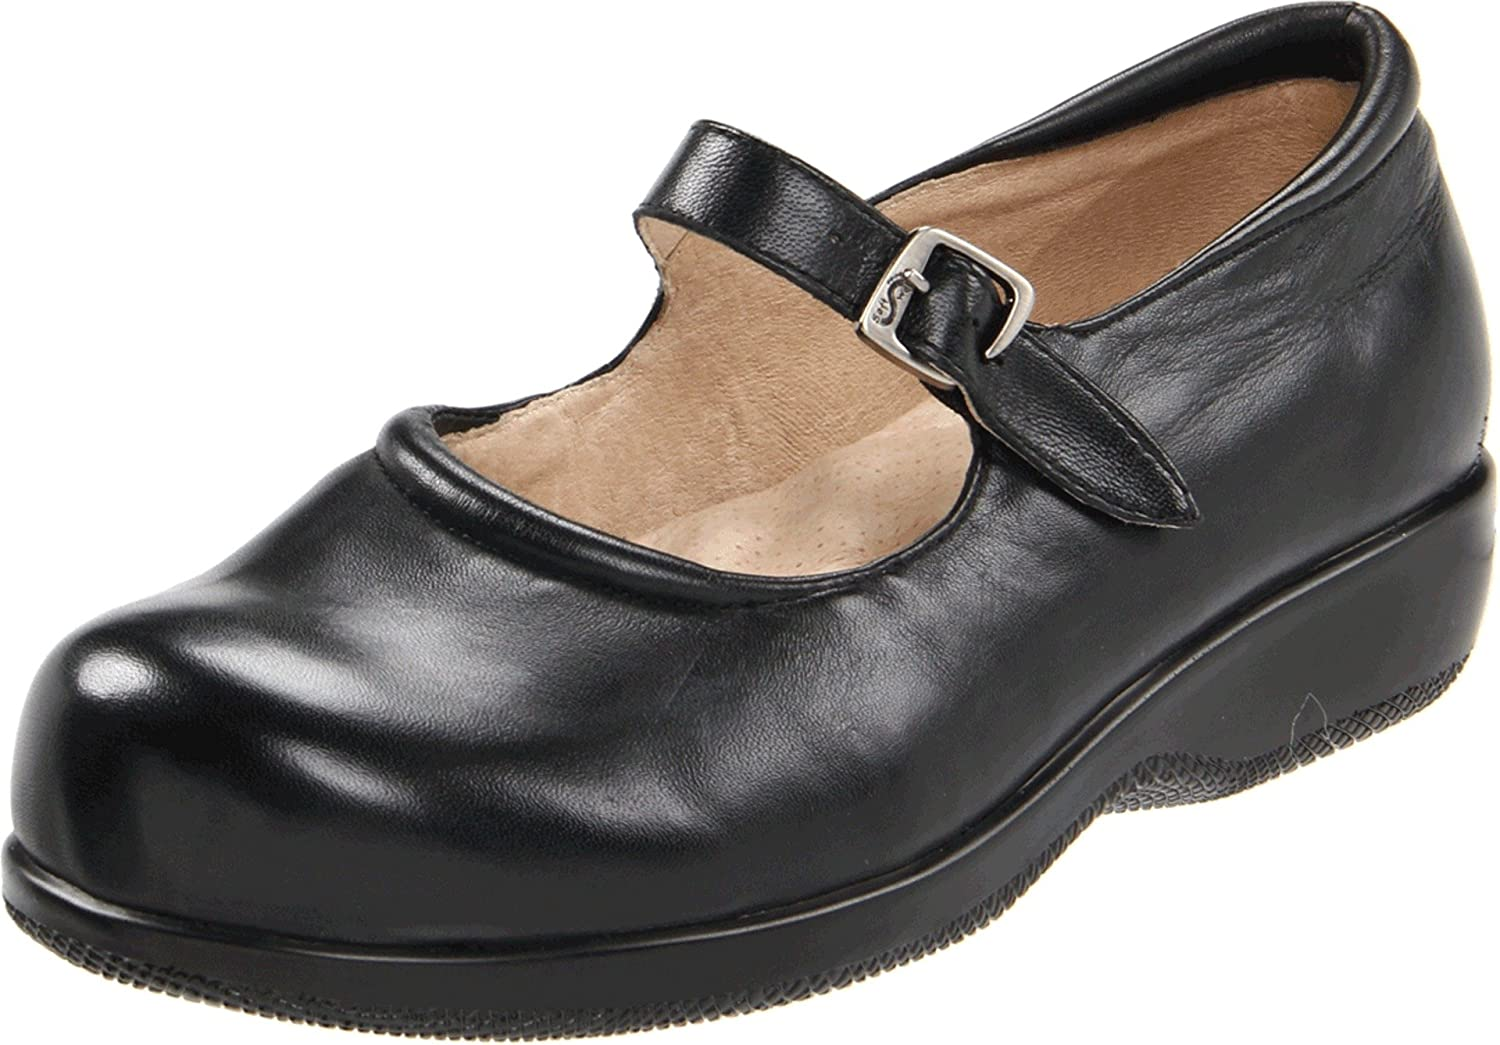 SoftWalk Women's Jupiter Mary Jane B000C9VQ5W 8 N|Black